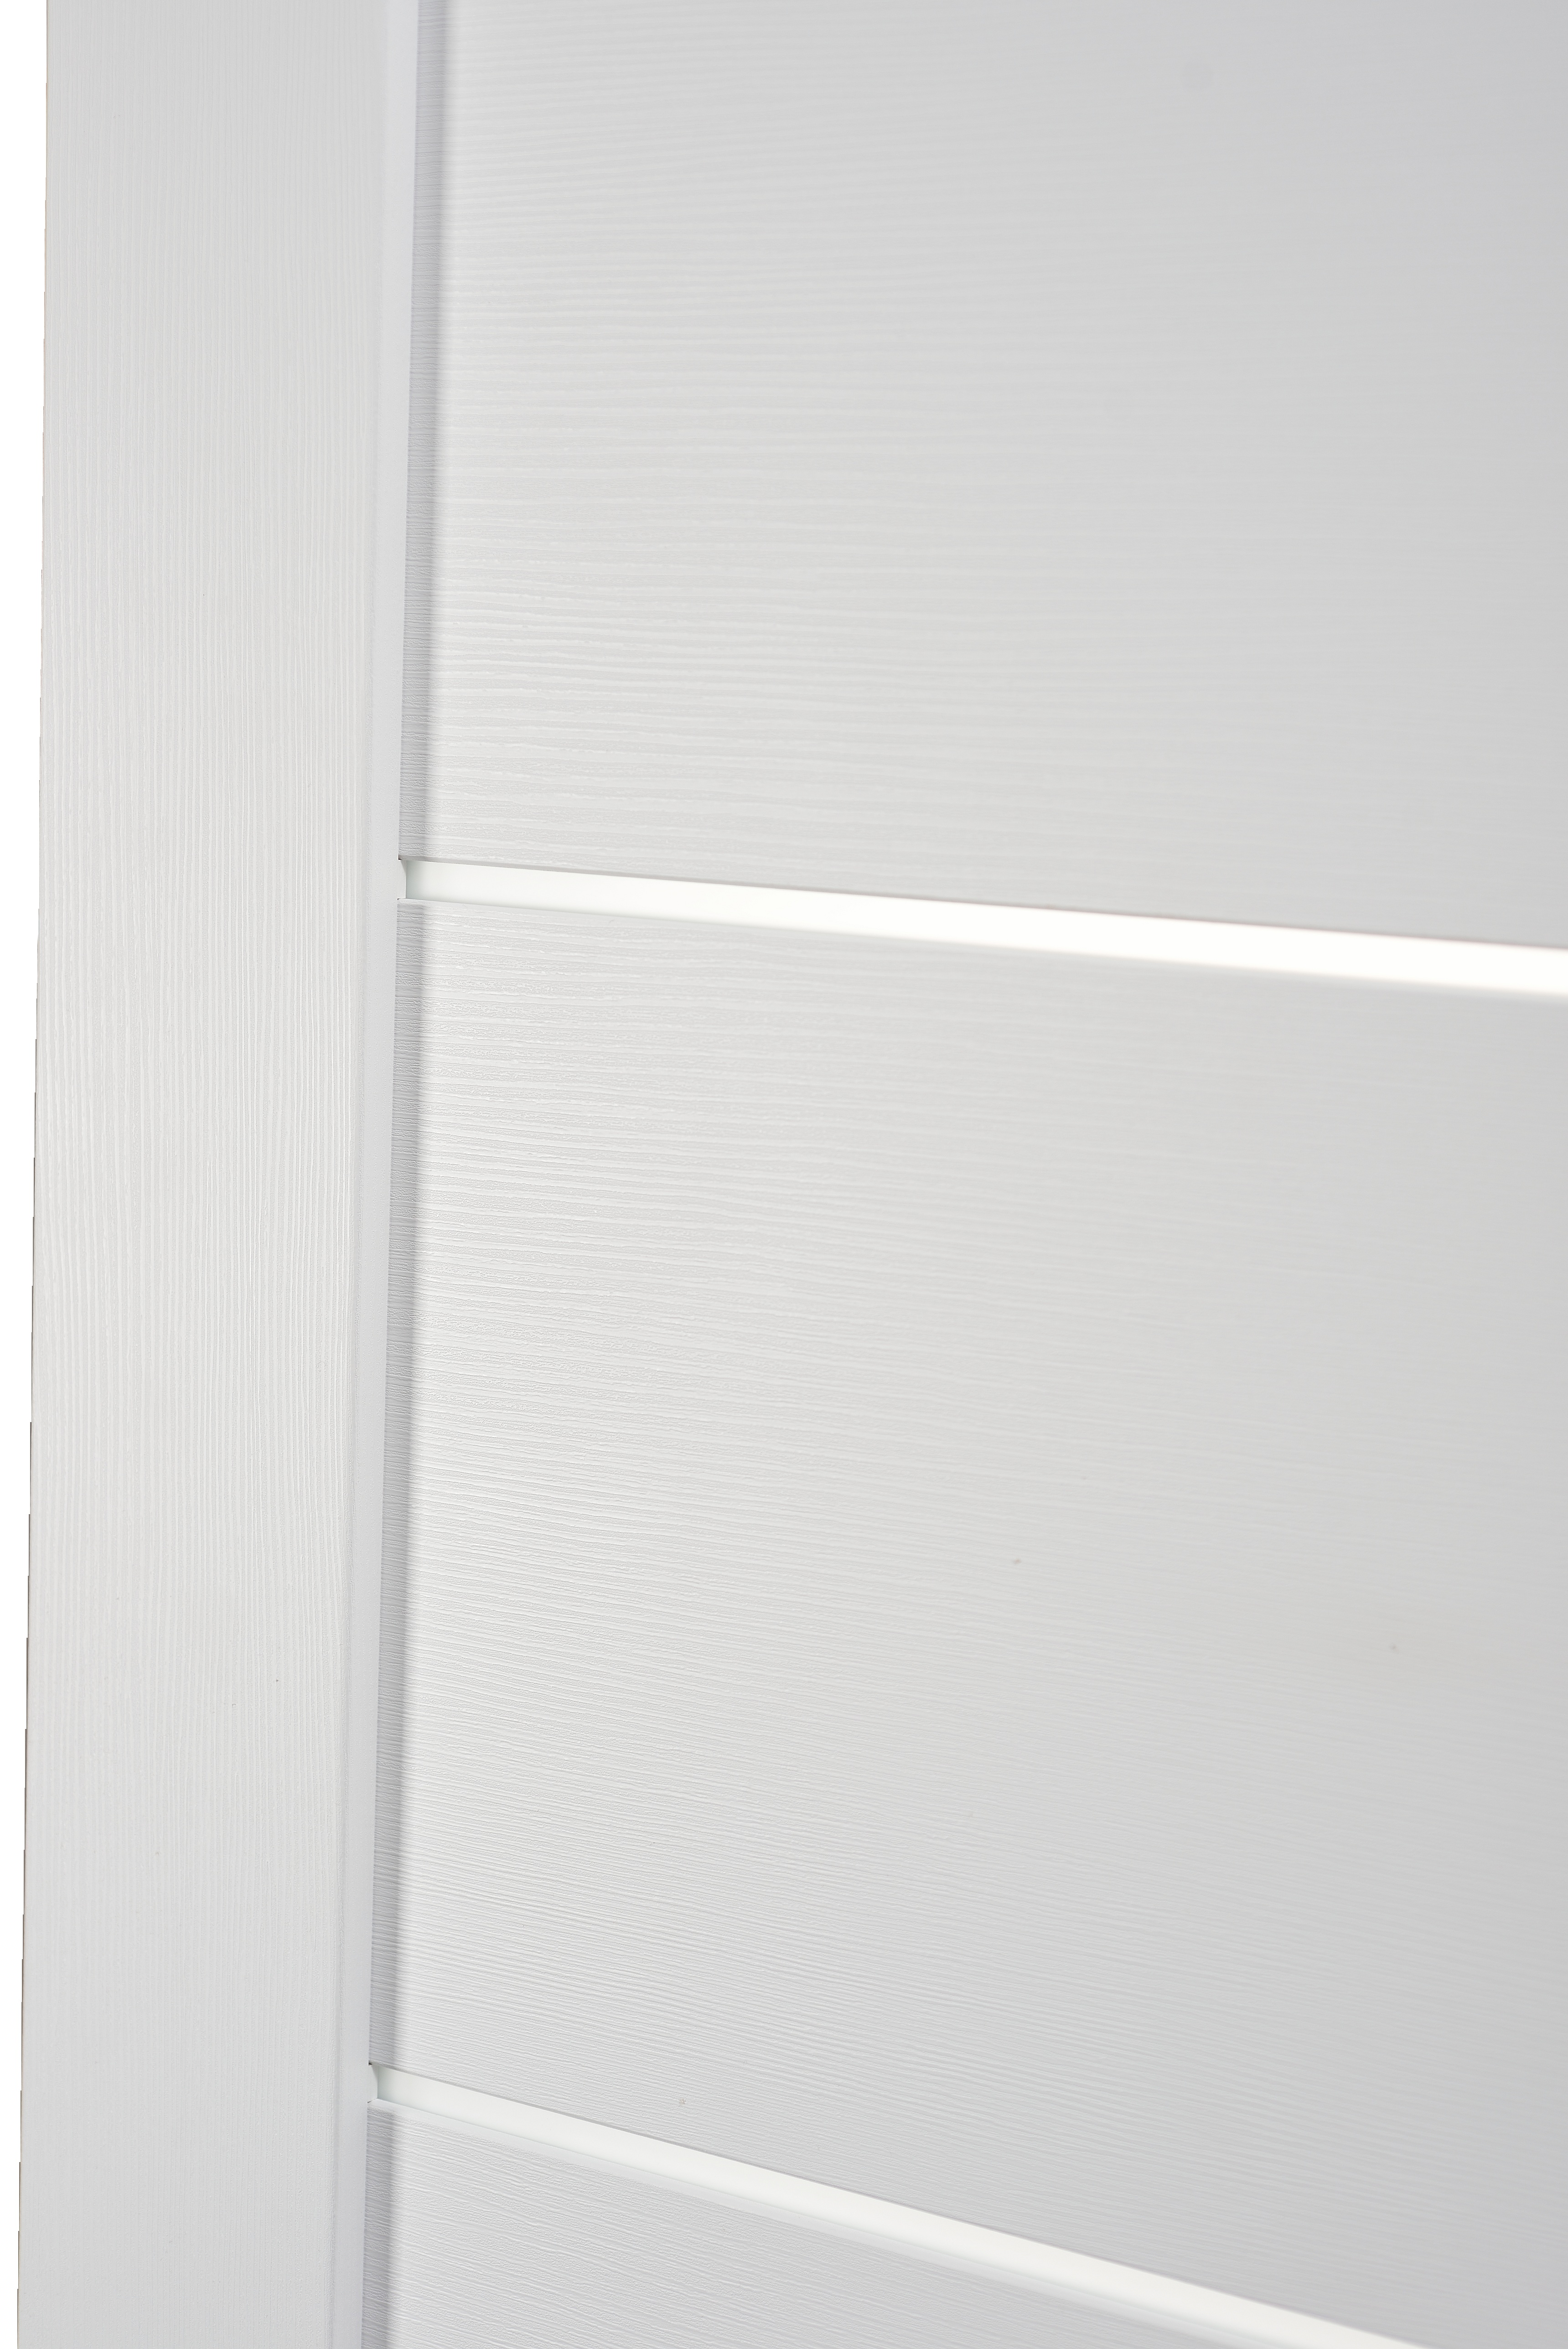 Image Tia Interior Door Bianco Noble/Frosted Glass 1